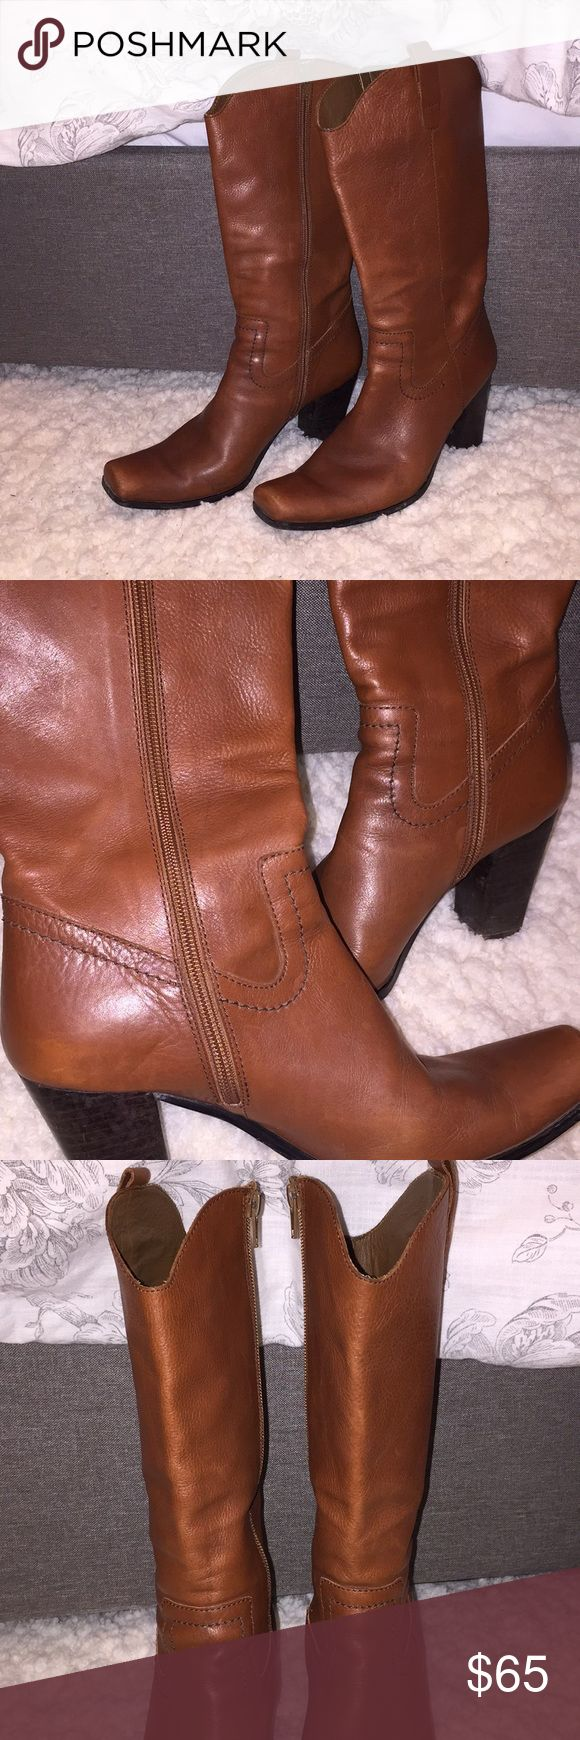 Ursula Mascaro brown leather boots - Size 38 Ursula Mascaro brown leather boots - Size 38   Worn a few times, but in terrific condition. A few spots (see photos), but I believe a cobbler could clean them properly and get them out. Ursula Mascaro Shoes Heeled Boots